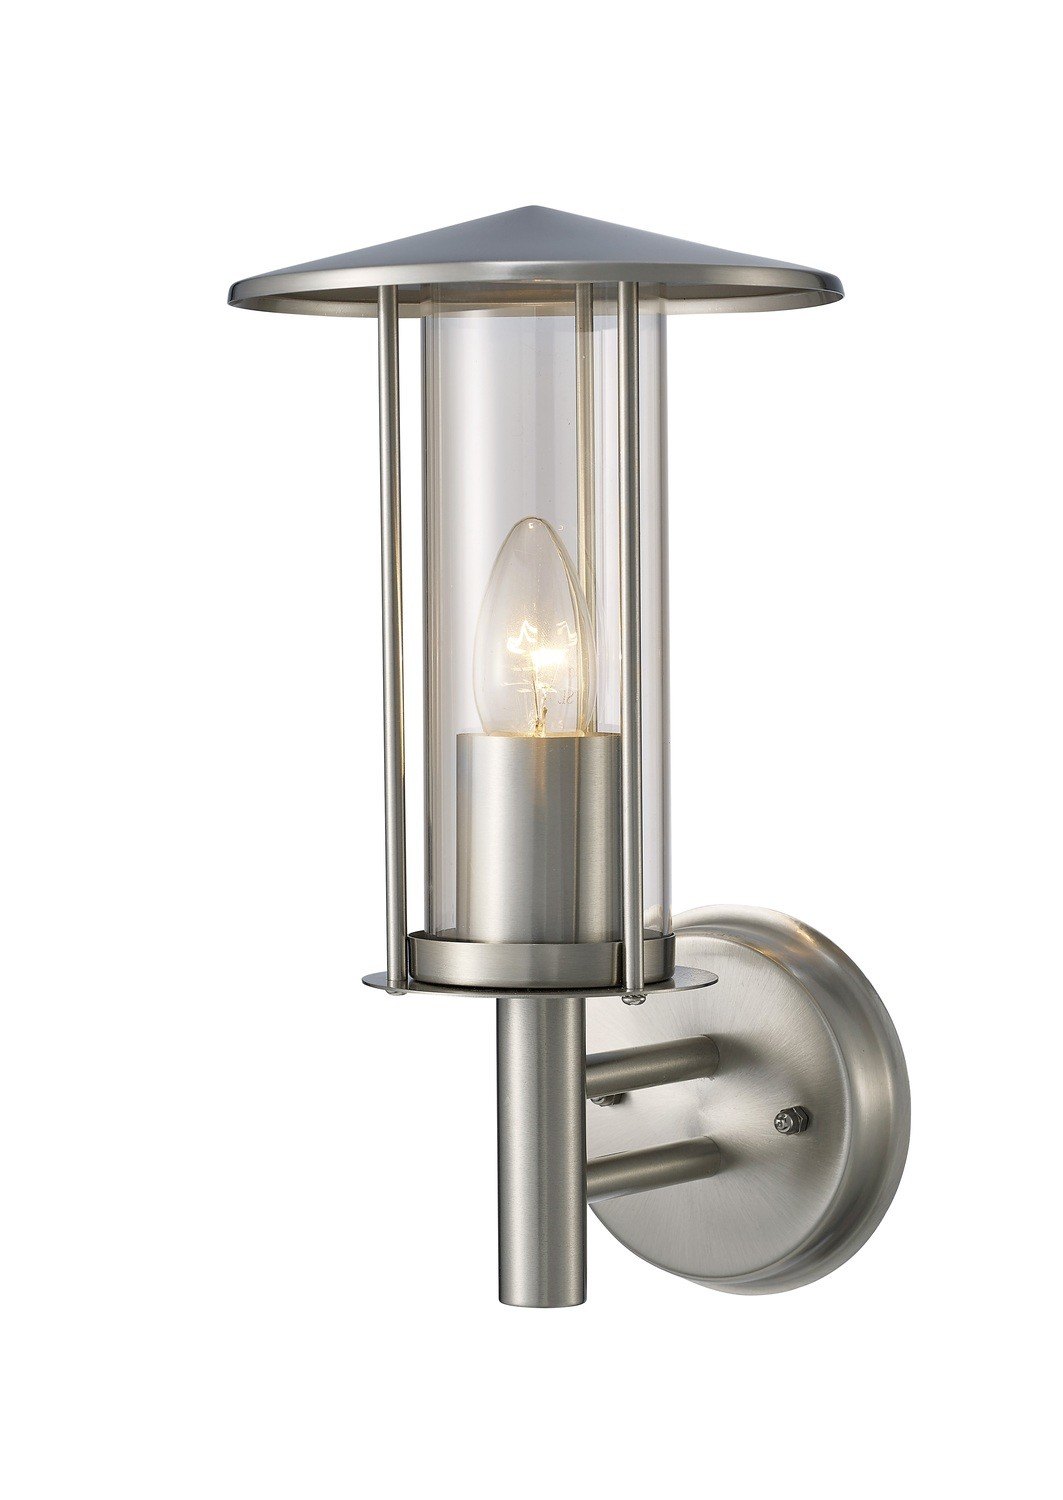 Dalton Outdoor Wall Lamp 1 Light E27 IP44 Stainless Steel/Clear